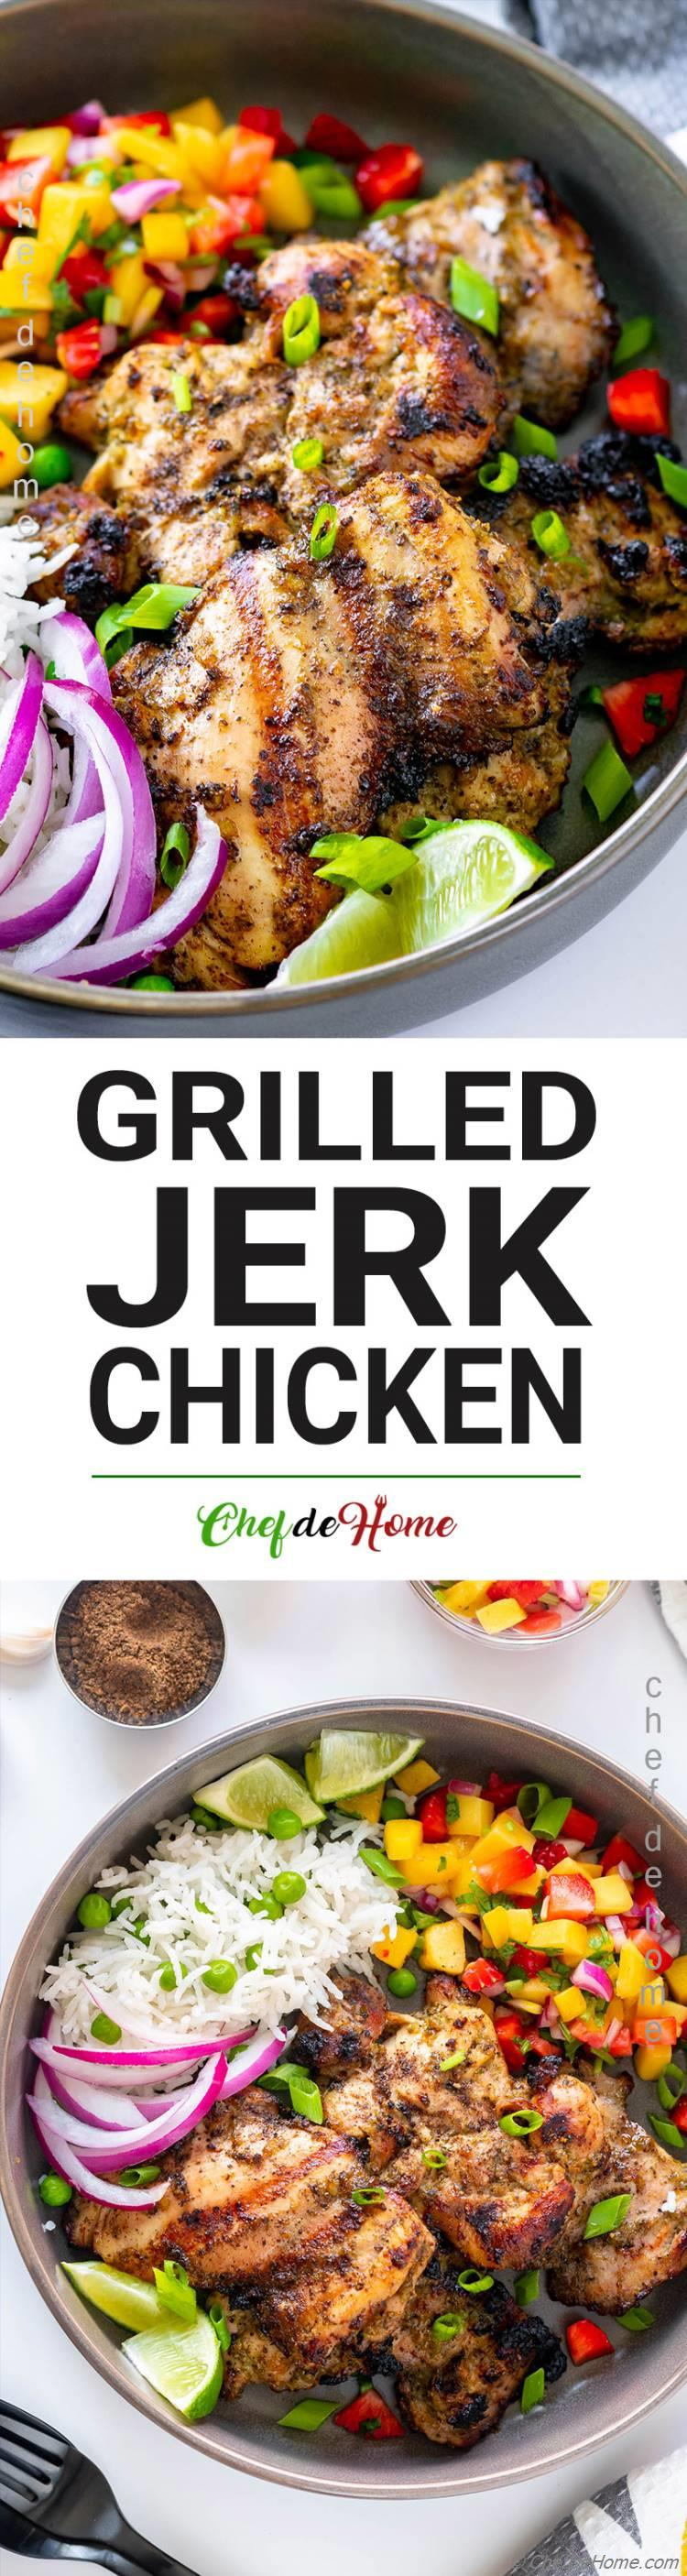 Best Ever Jerk Chicken